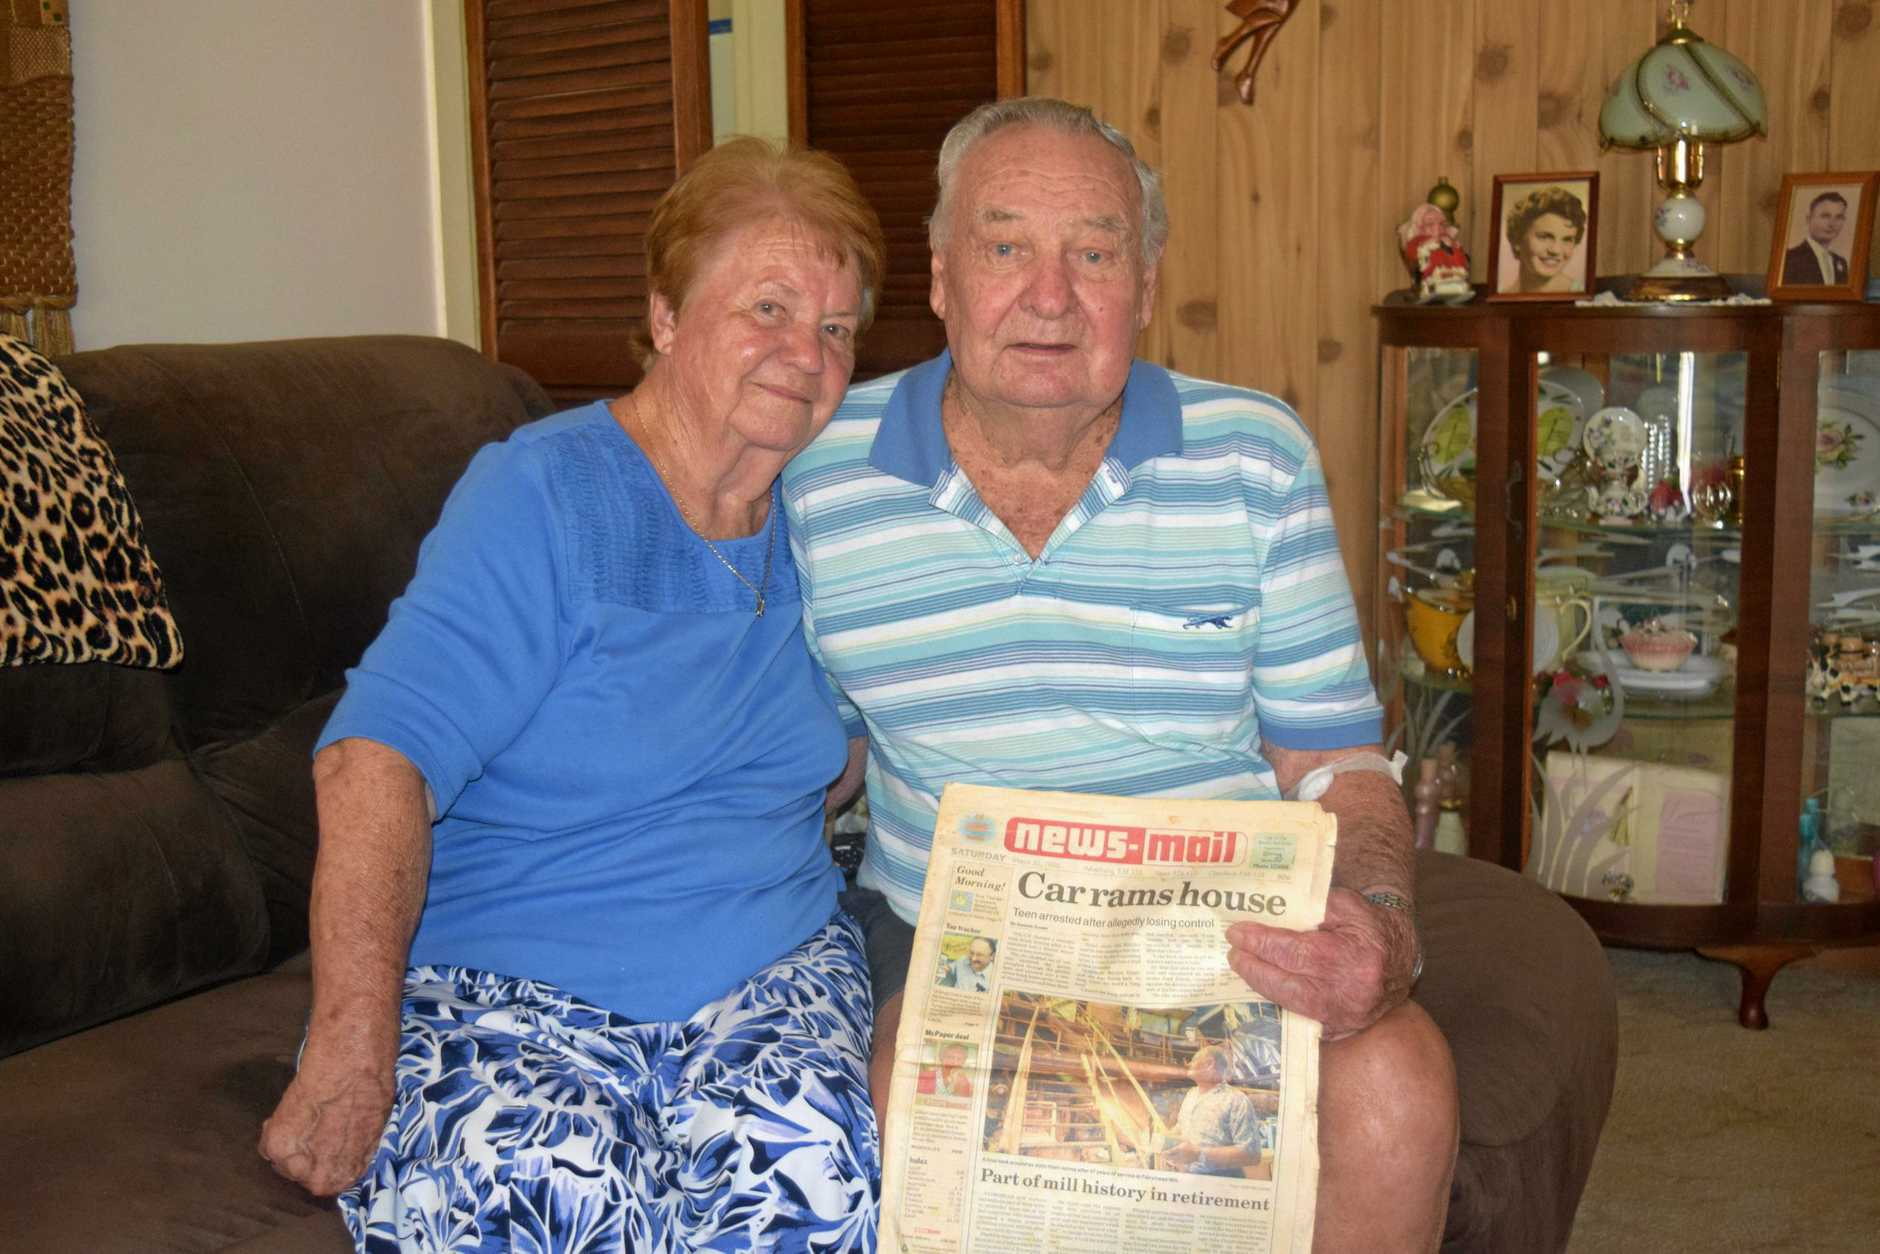 John Hunt, 85, and wife Joan Hunt, 78.